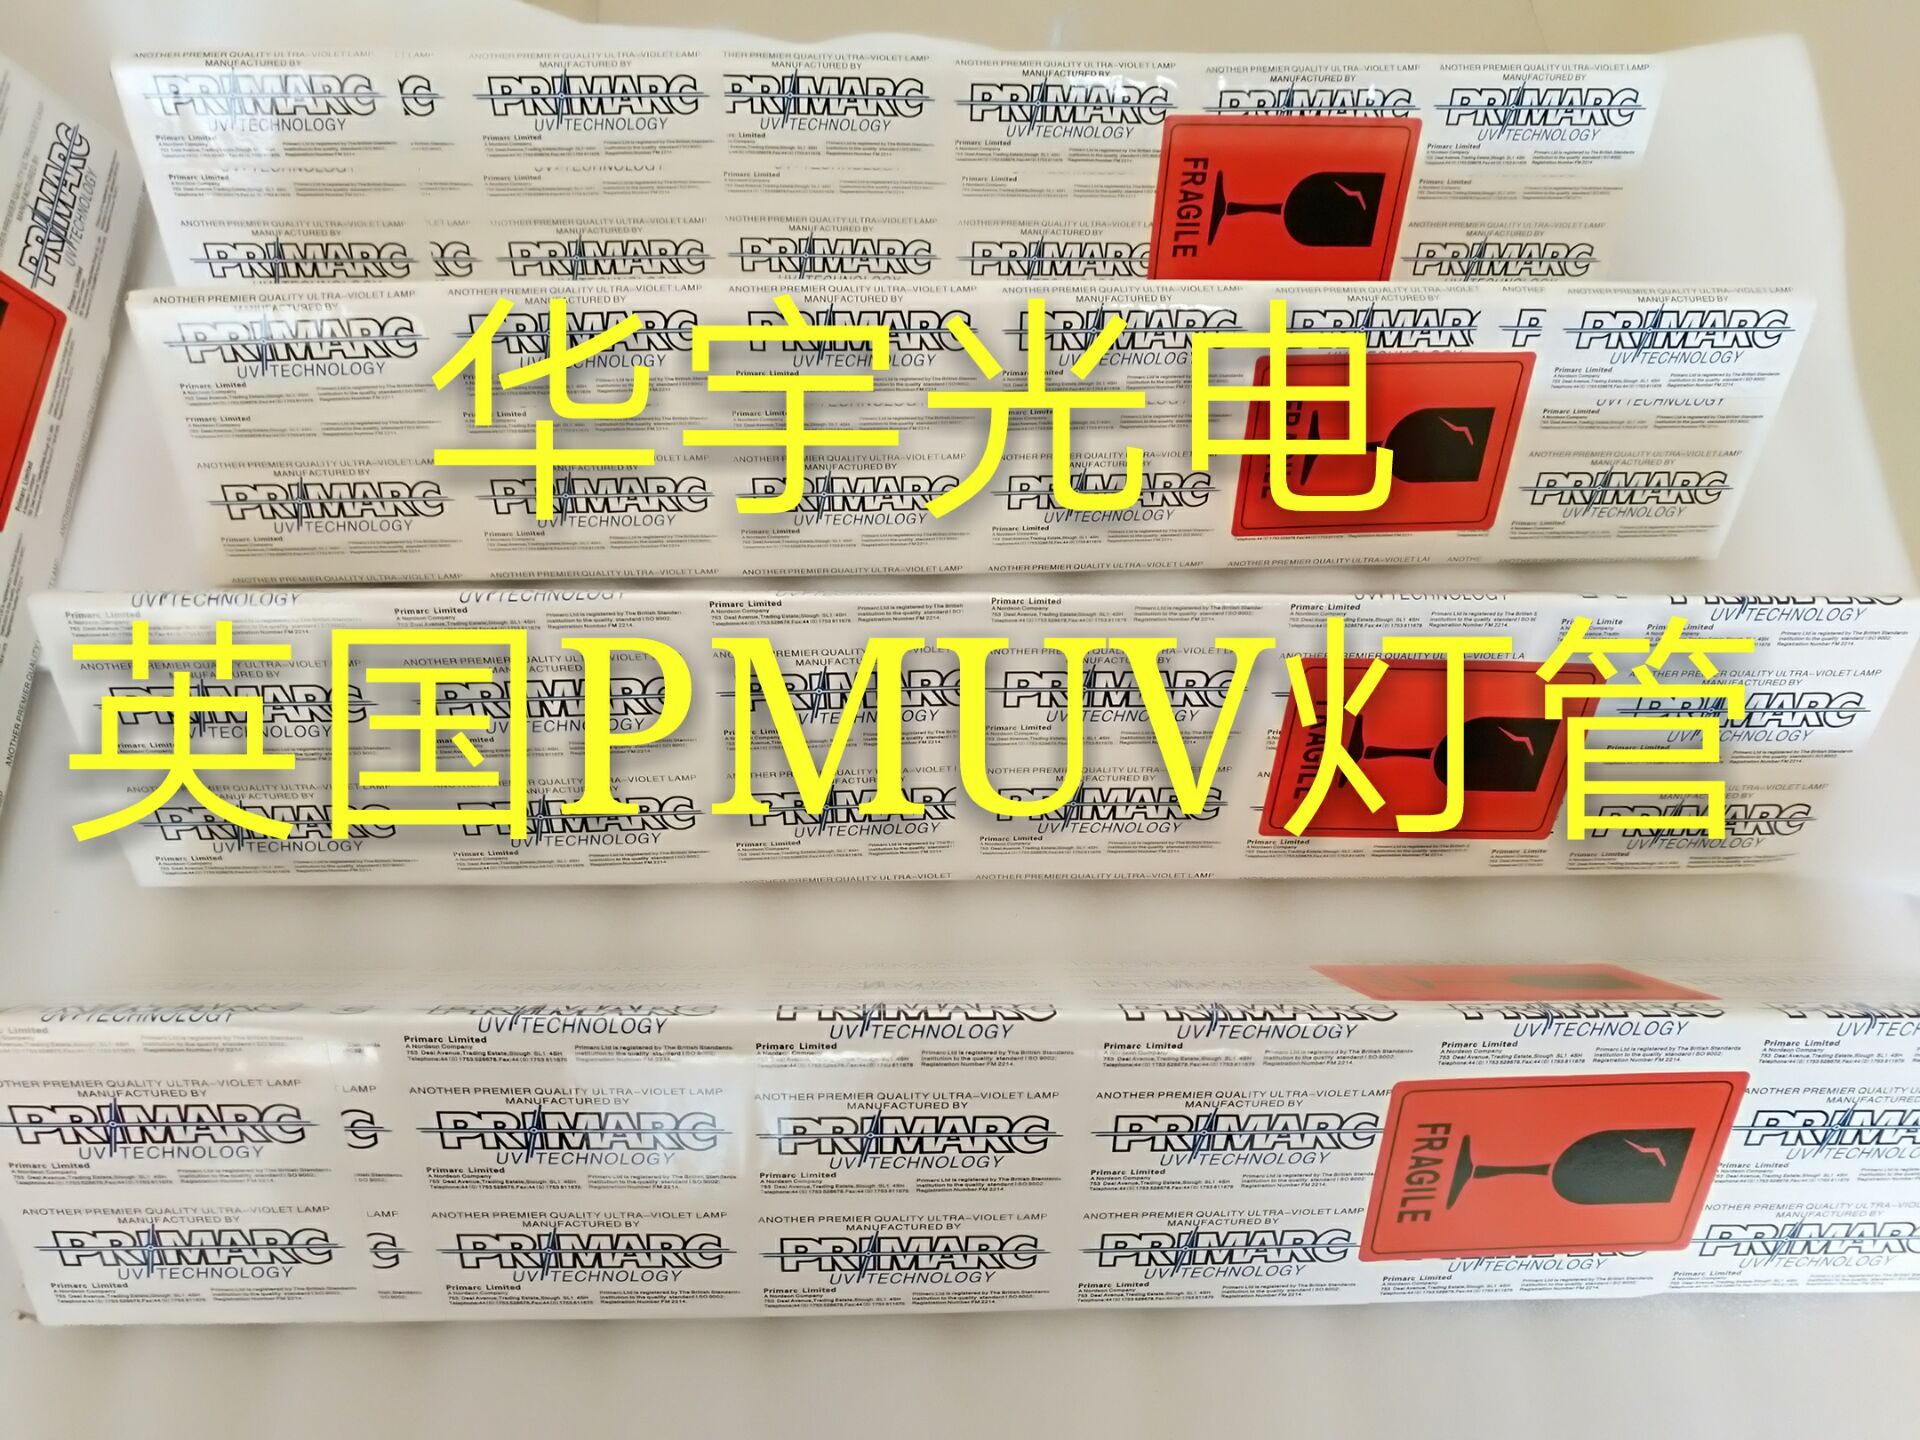 UK PM Lamp UV Lamp High Intensity UV PMUV Lamp Curing Lamp